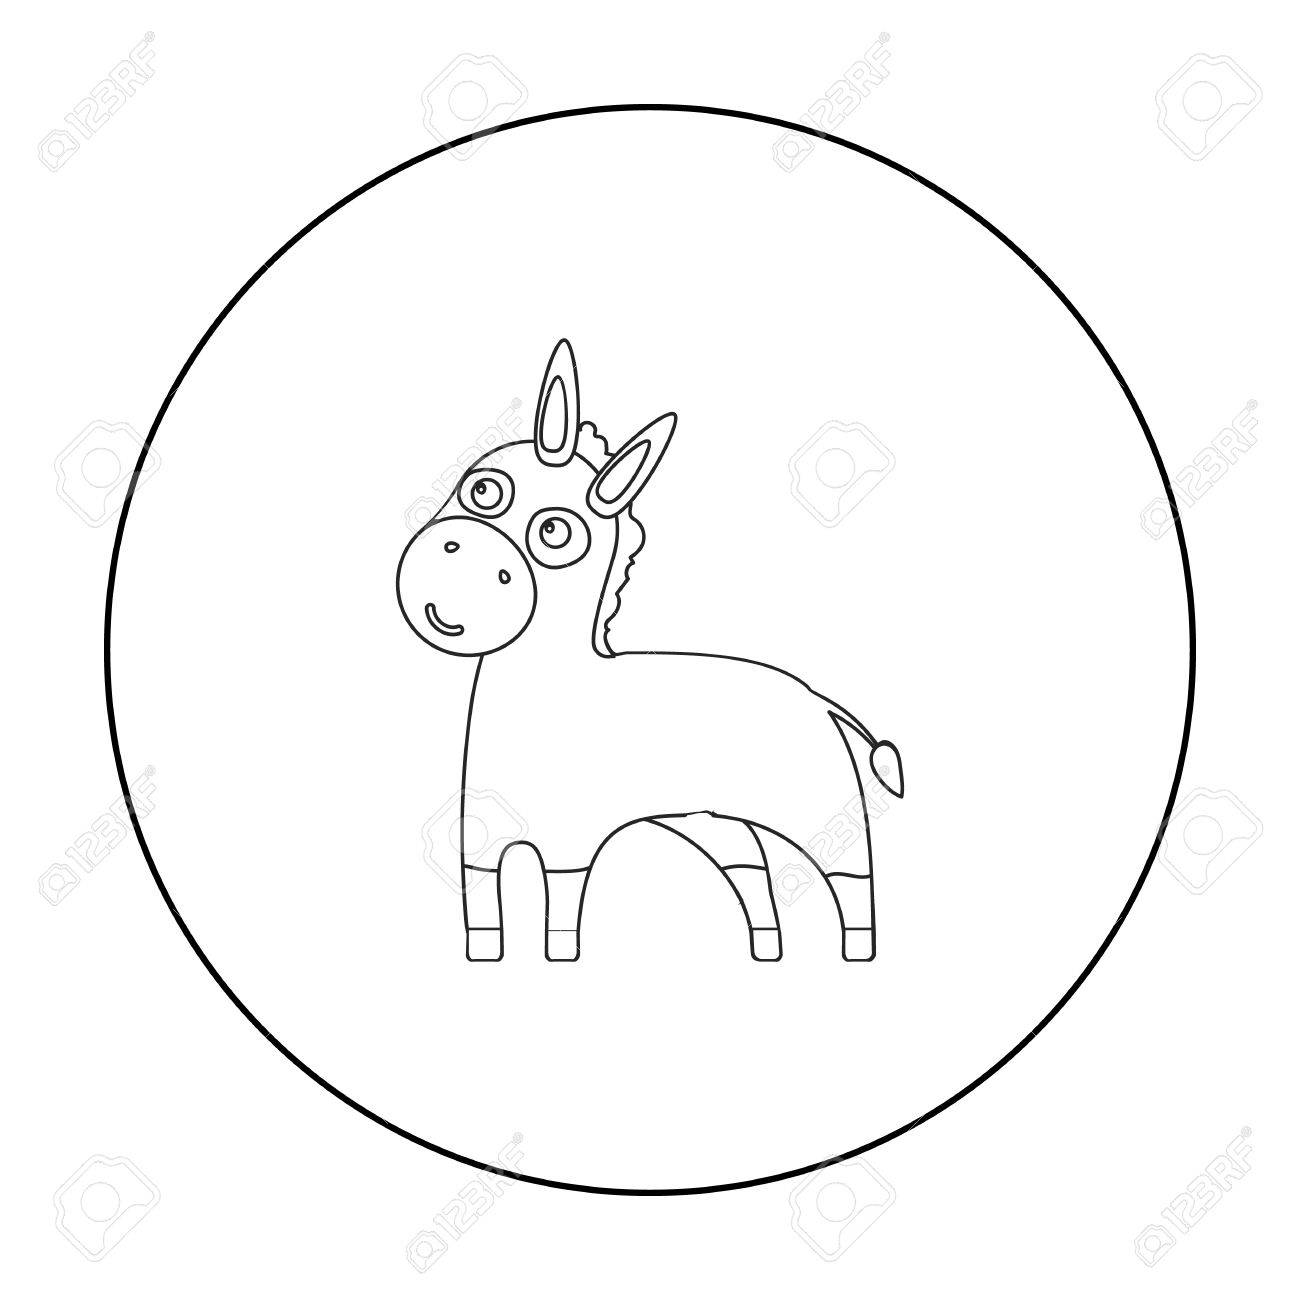 Donkey Drawing Outline At Getdrawings